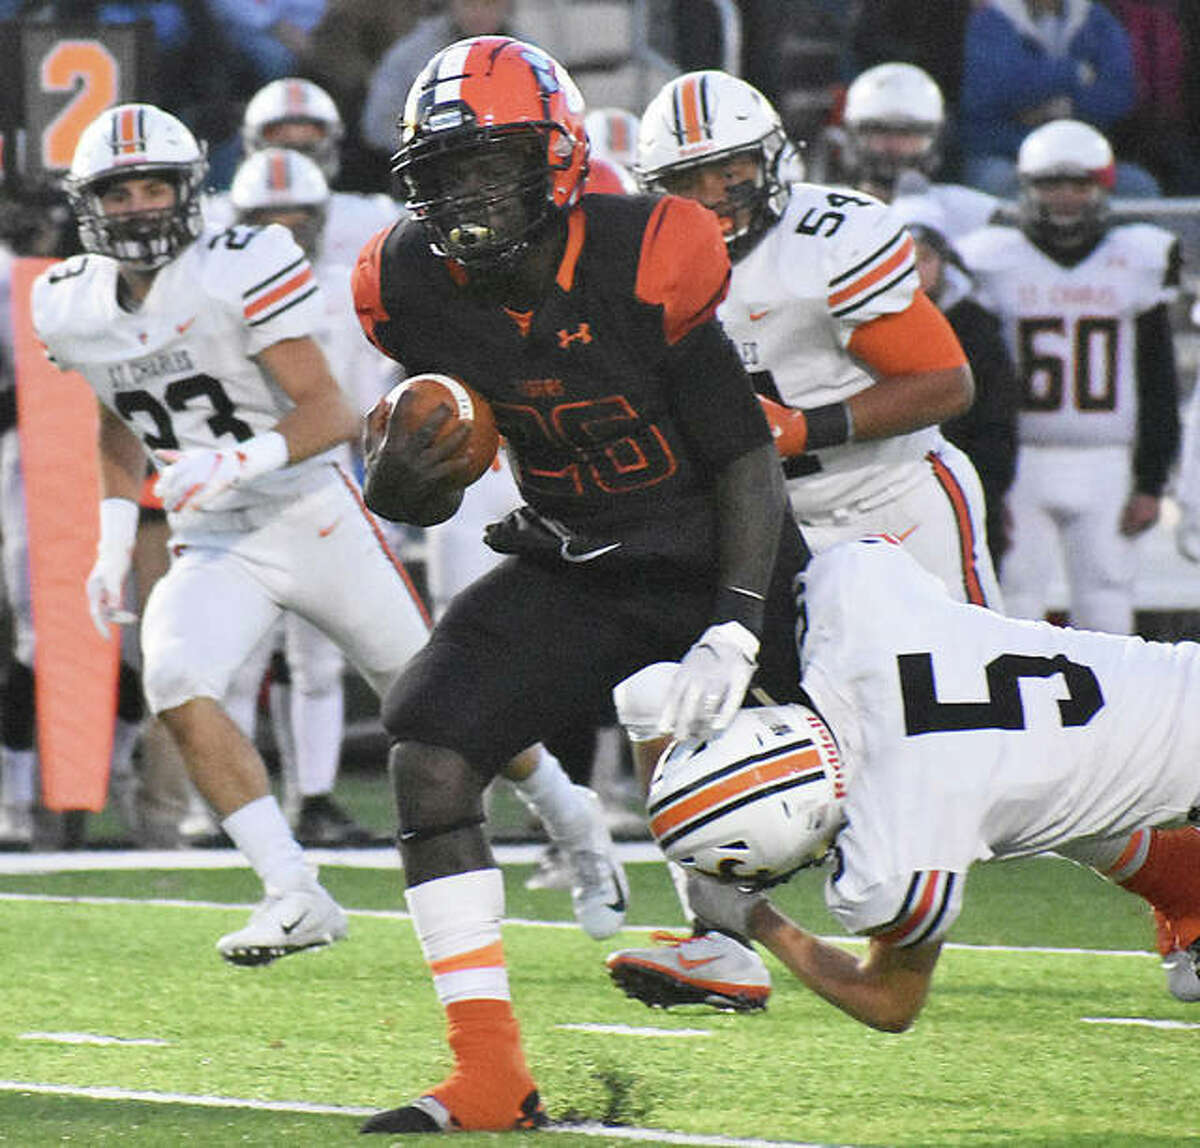 Edwardsville running back Justin Johnson Jr. breaks a tackle on his way for a touchdown in the first quarter against St. Charles East in a Class 8A first-round game inside the District 7 Sports Complex.